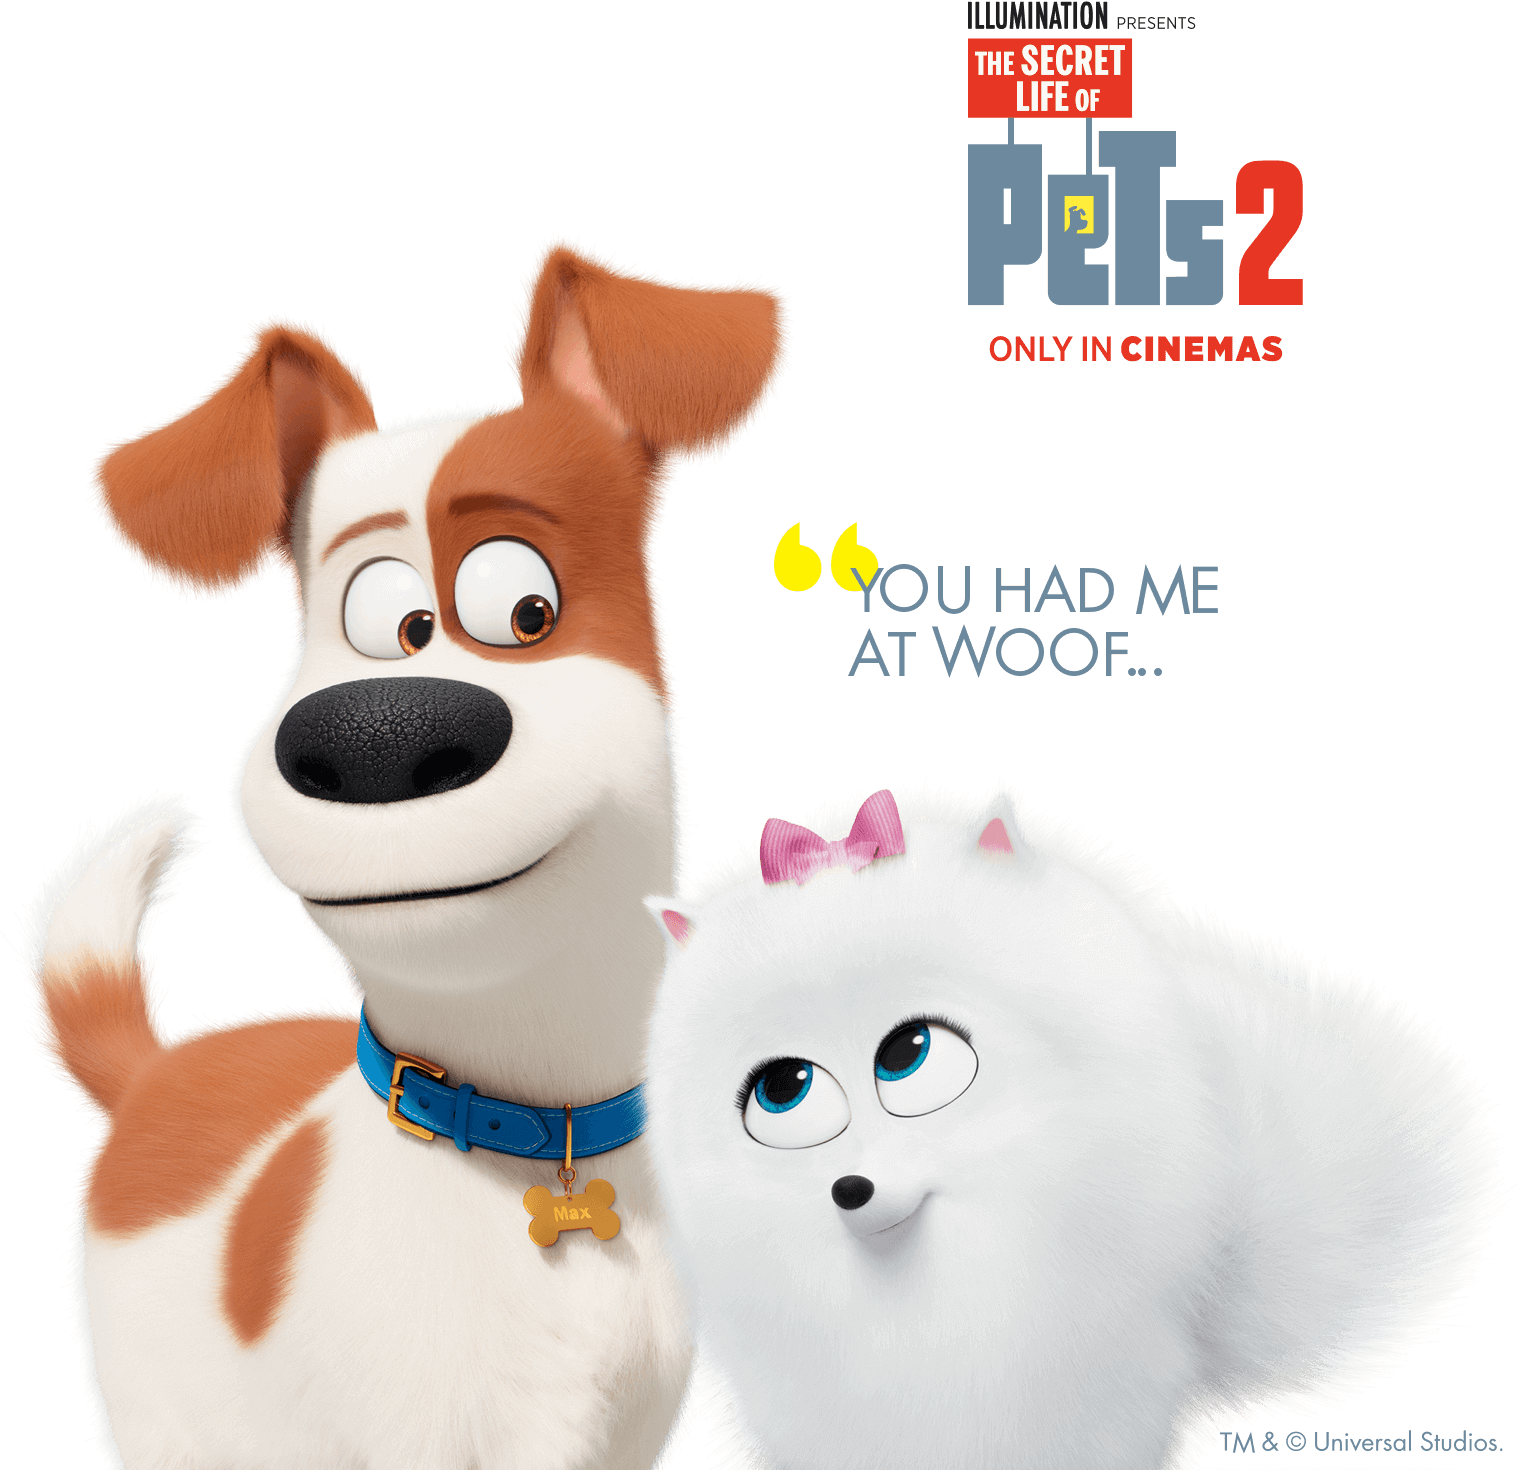 The Secret Lifoe of Pets 2 - You had me at woof.